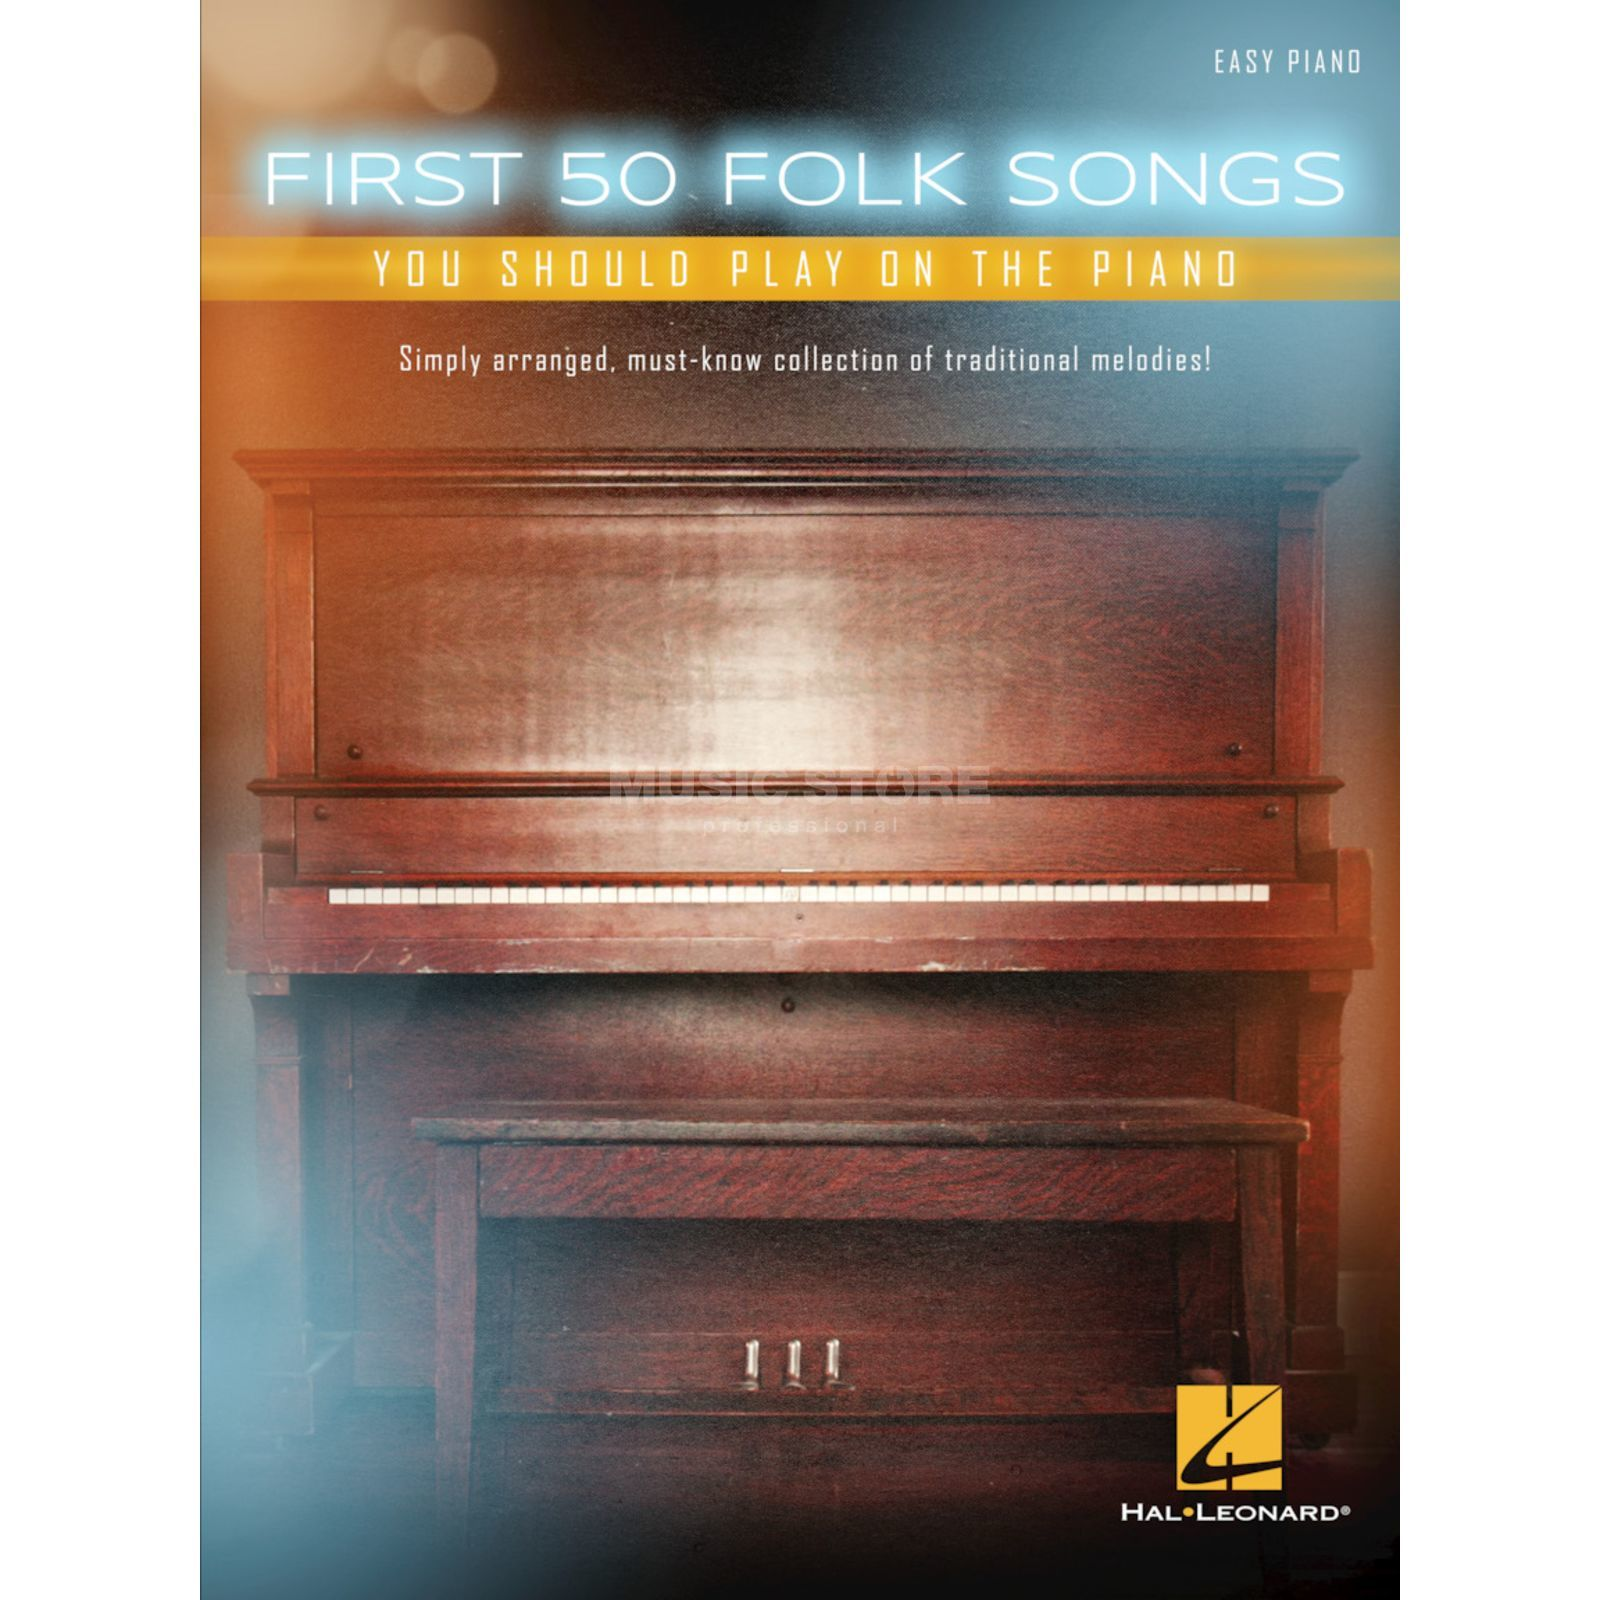 Hal Leonard First 50 Folk Songs You Should Play On The Piano Product Image